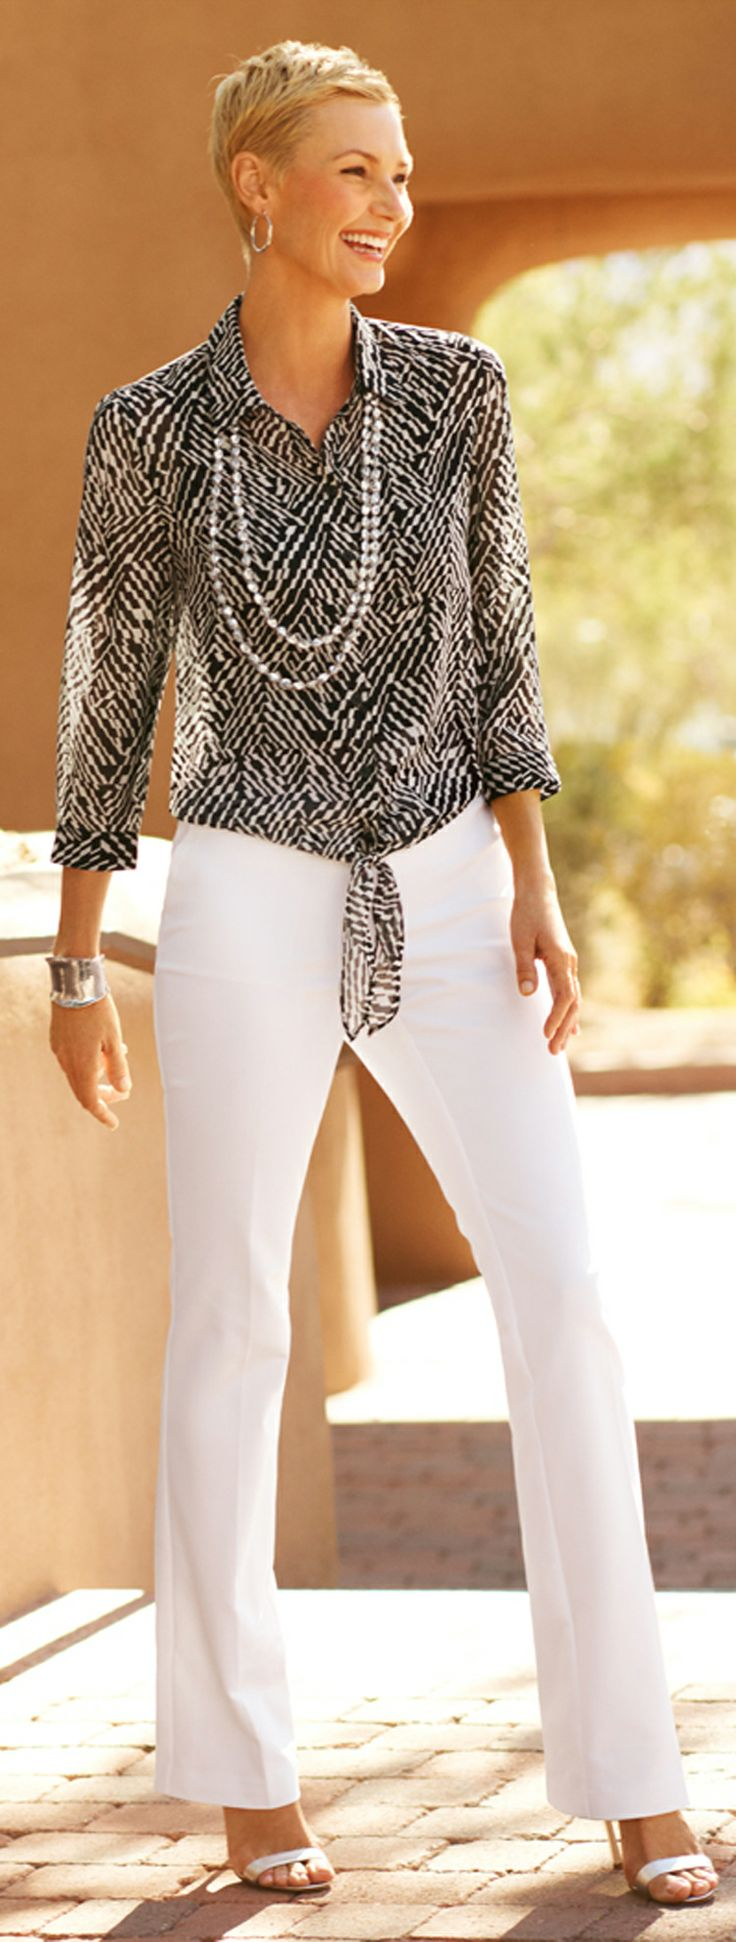 Keep it fresh with modern shapes, eye-catching prints, and fab jewels.